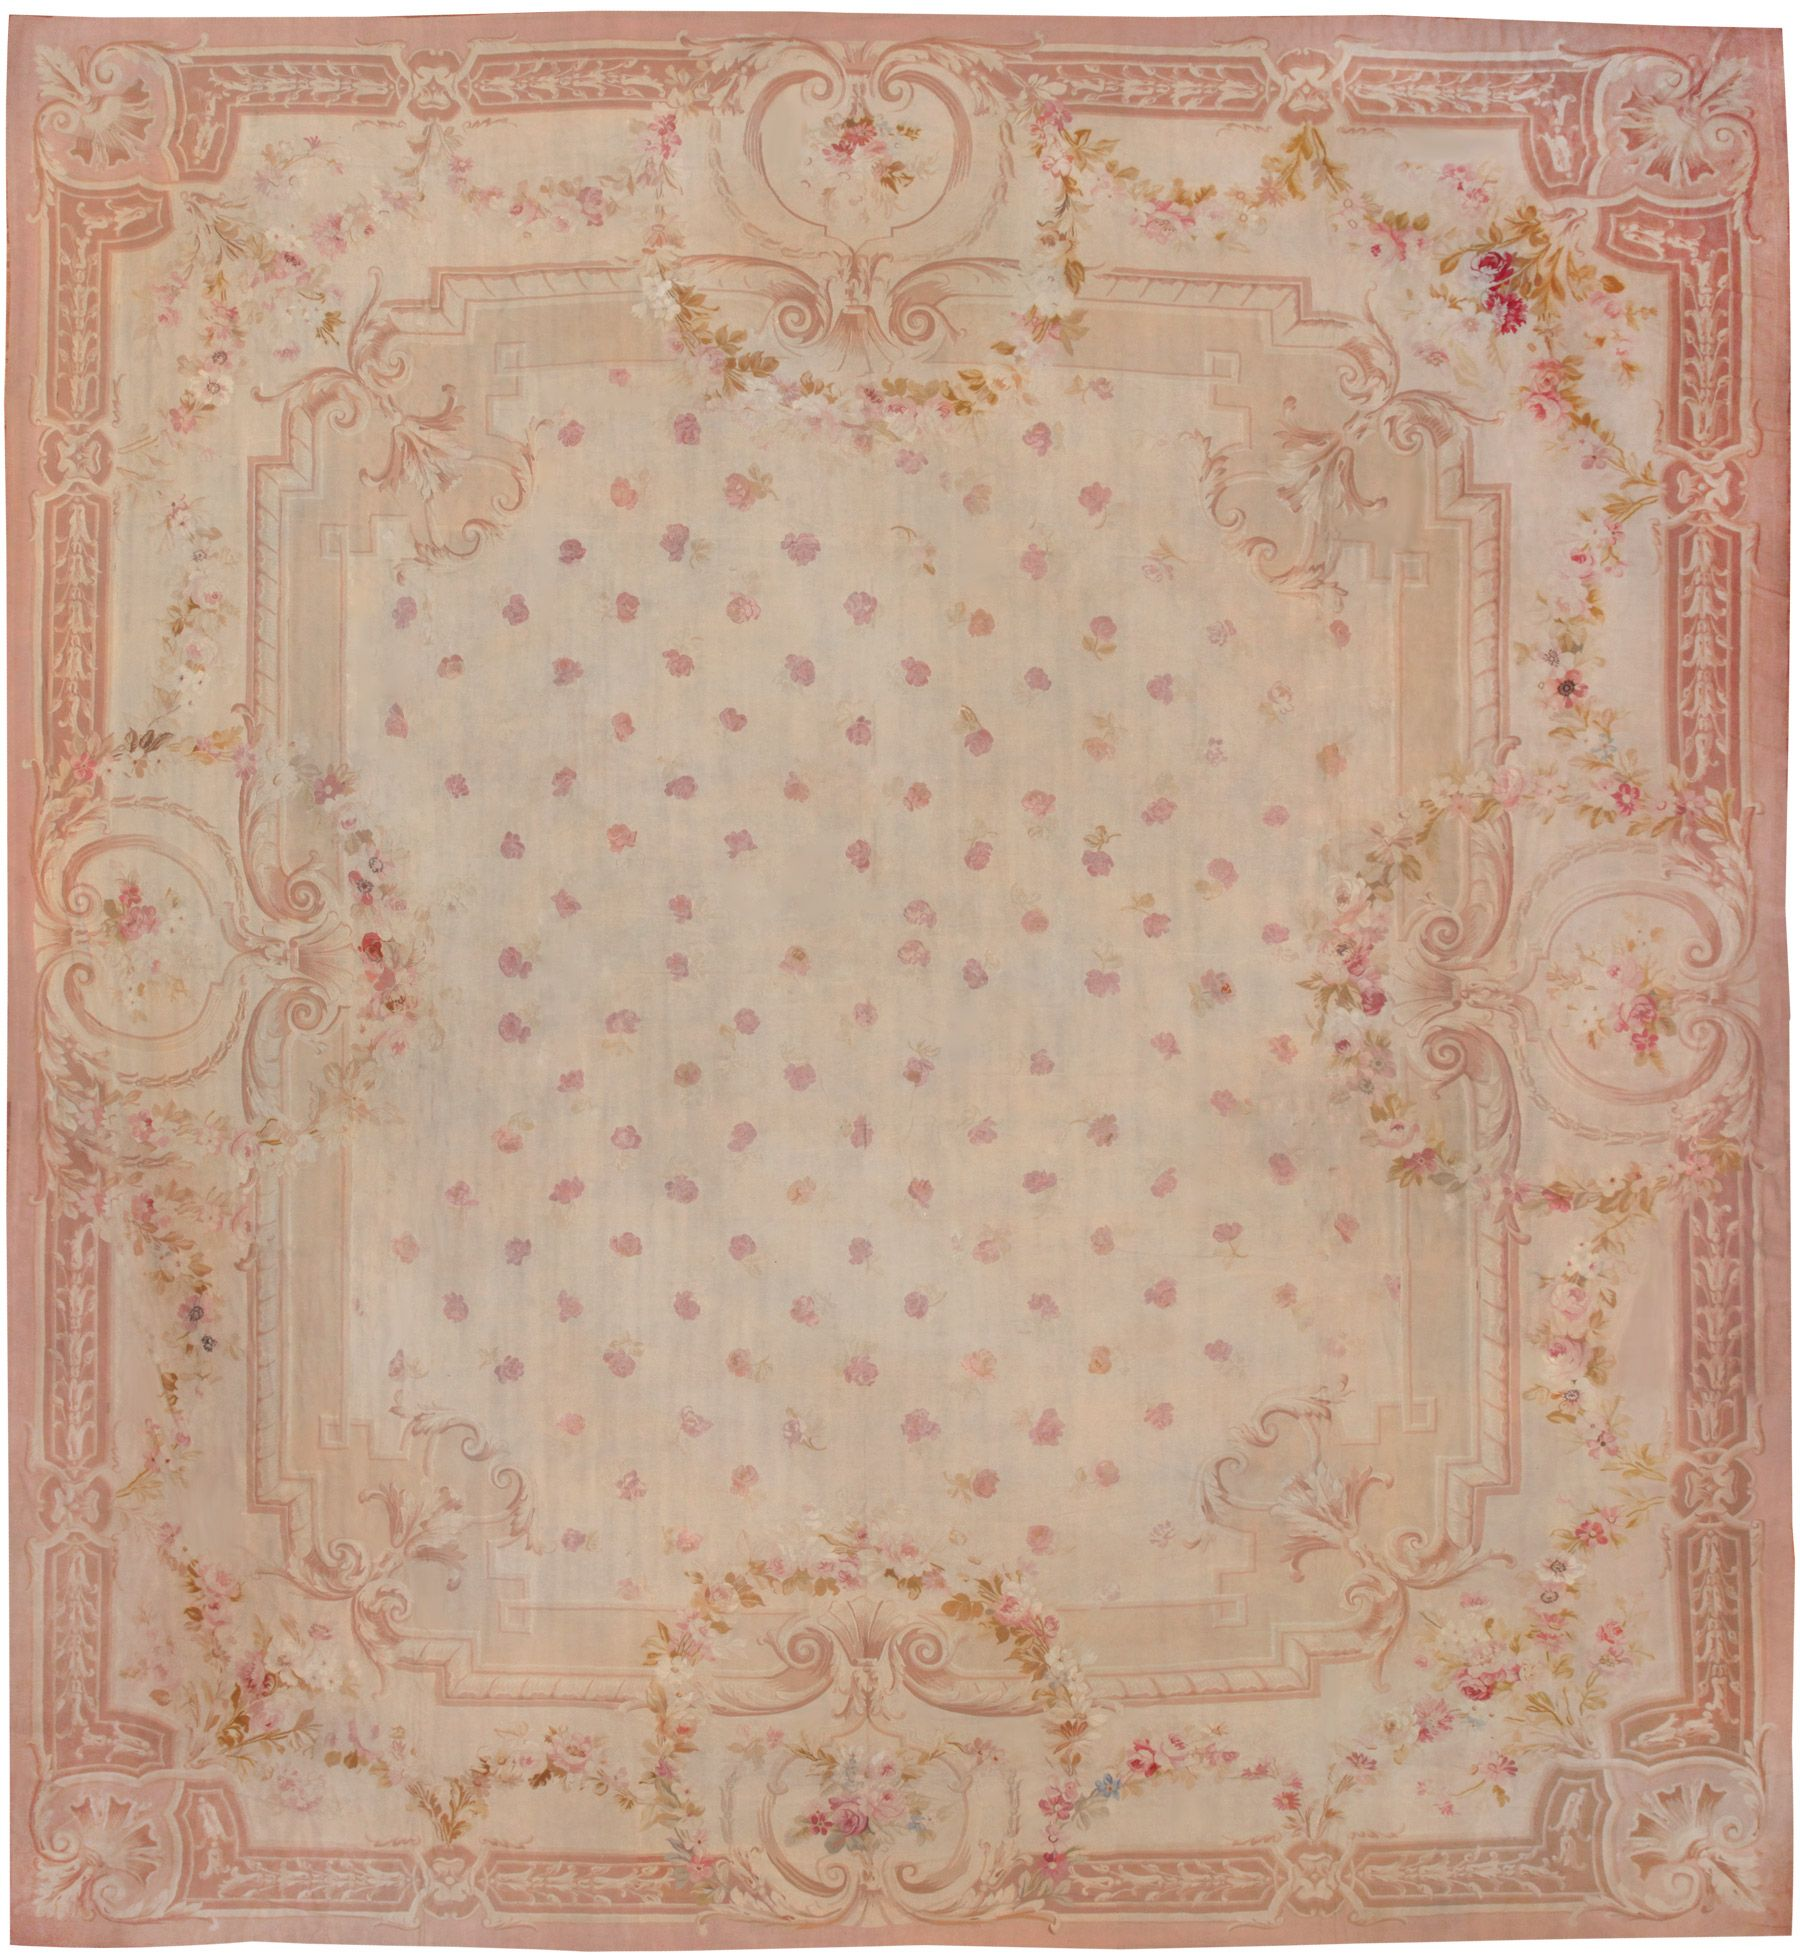 Antique Aubusson French Rug 8515 Detail/Large View   By Nazmiyal